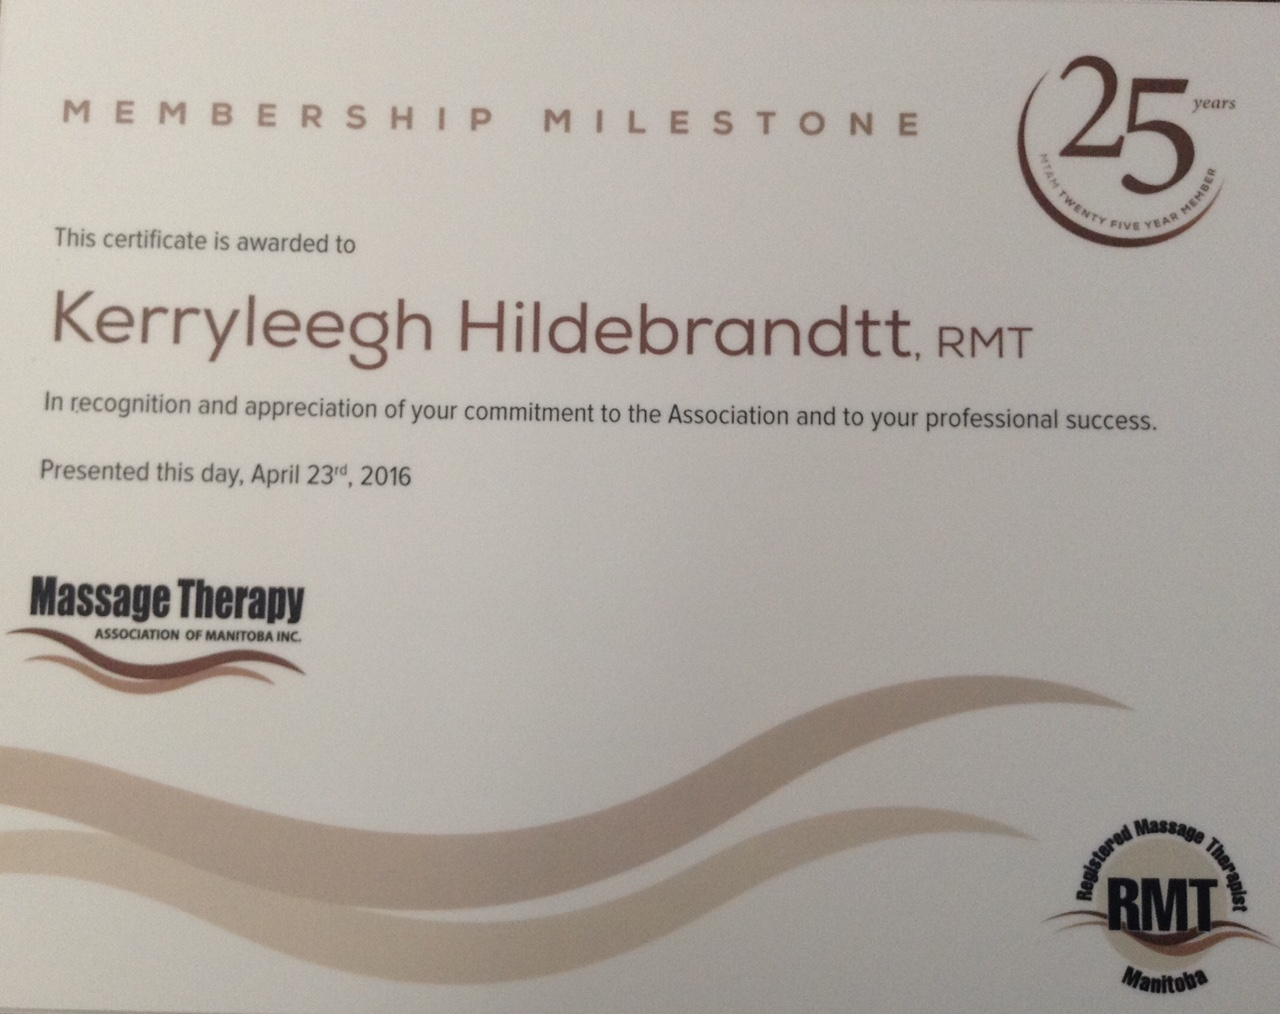 Kerryleegh k Hildebrandtt RMT is celebrating 30 years of private practice in 2017